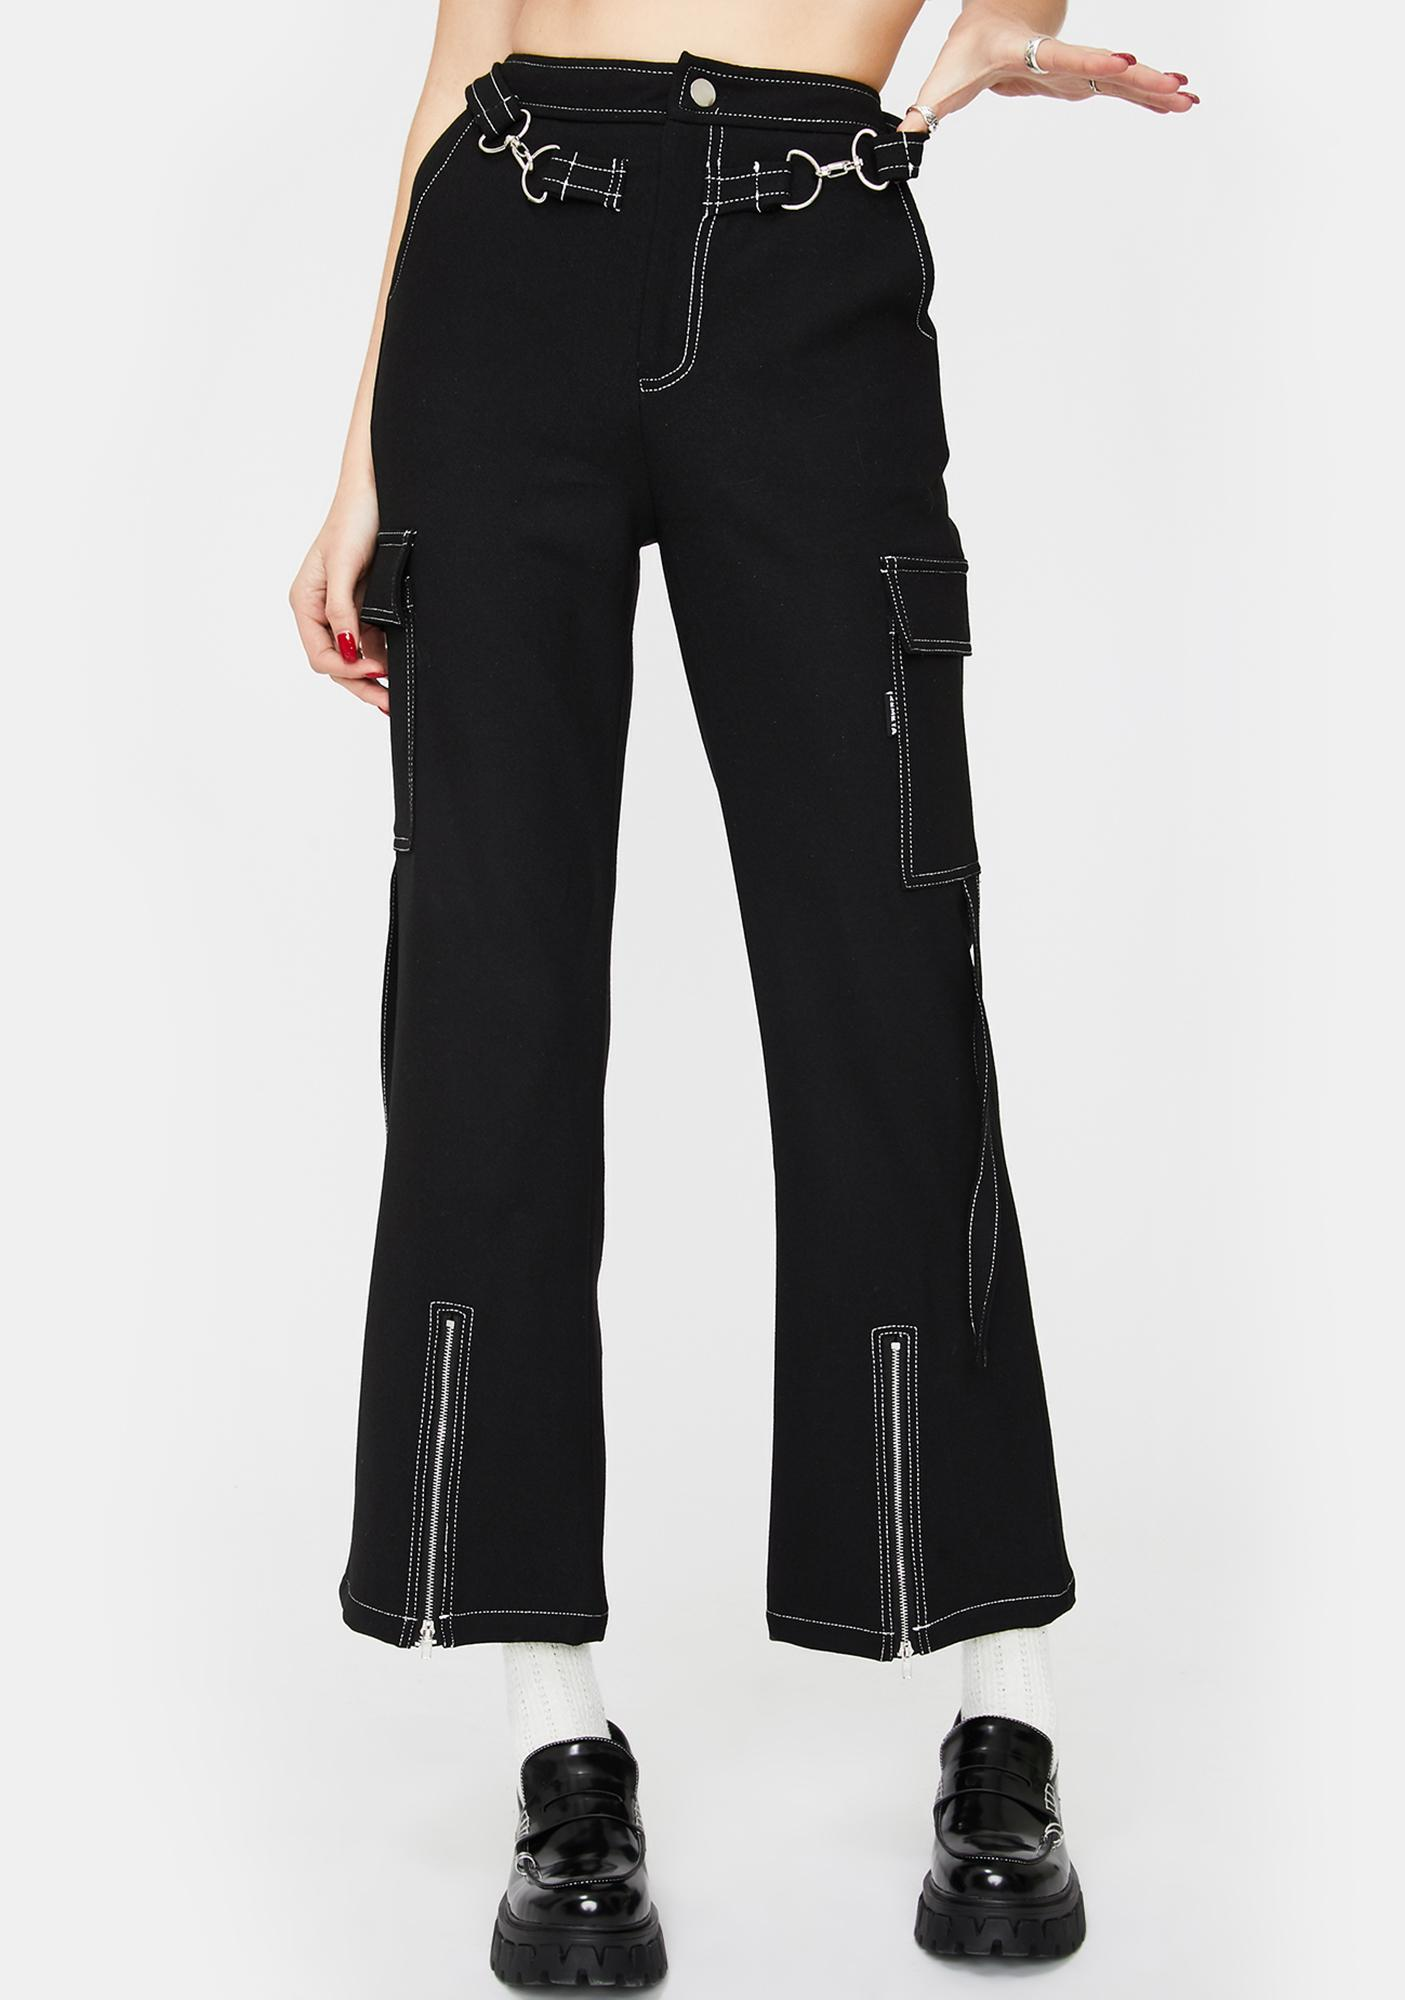 ZEMETA Black Wide Leg Zip Crop Cargo Pants